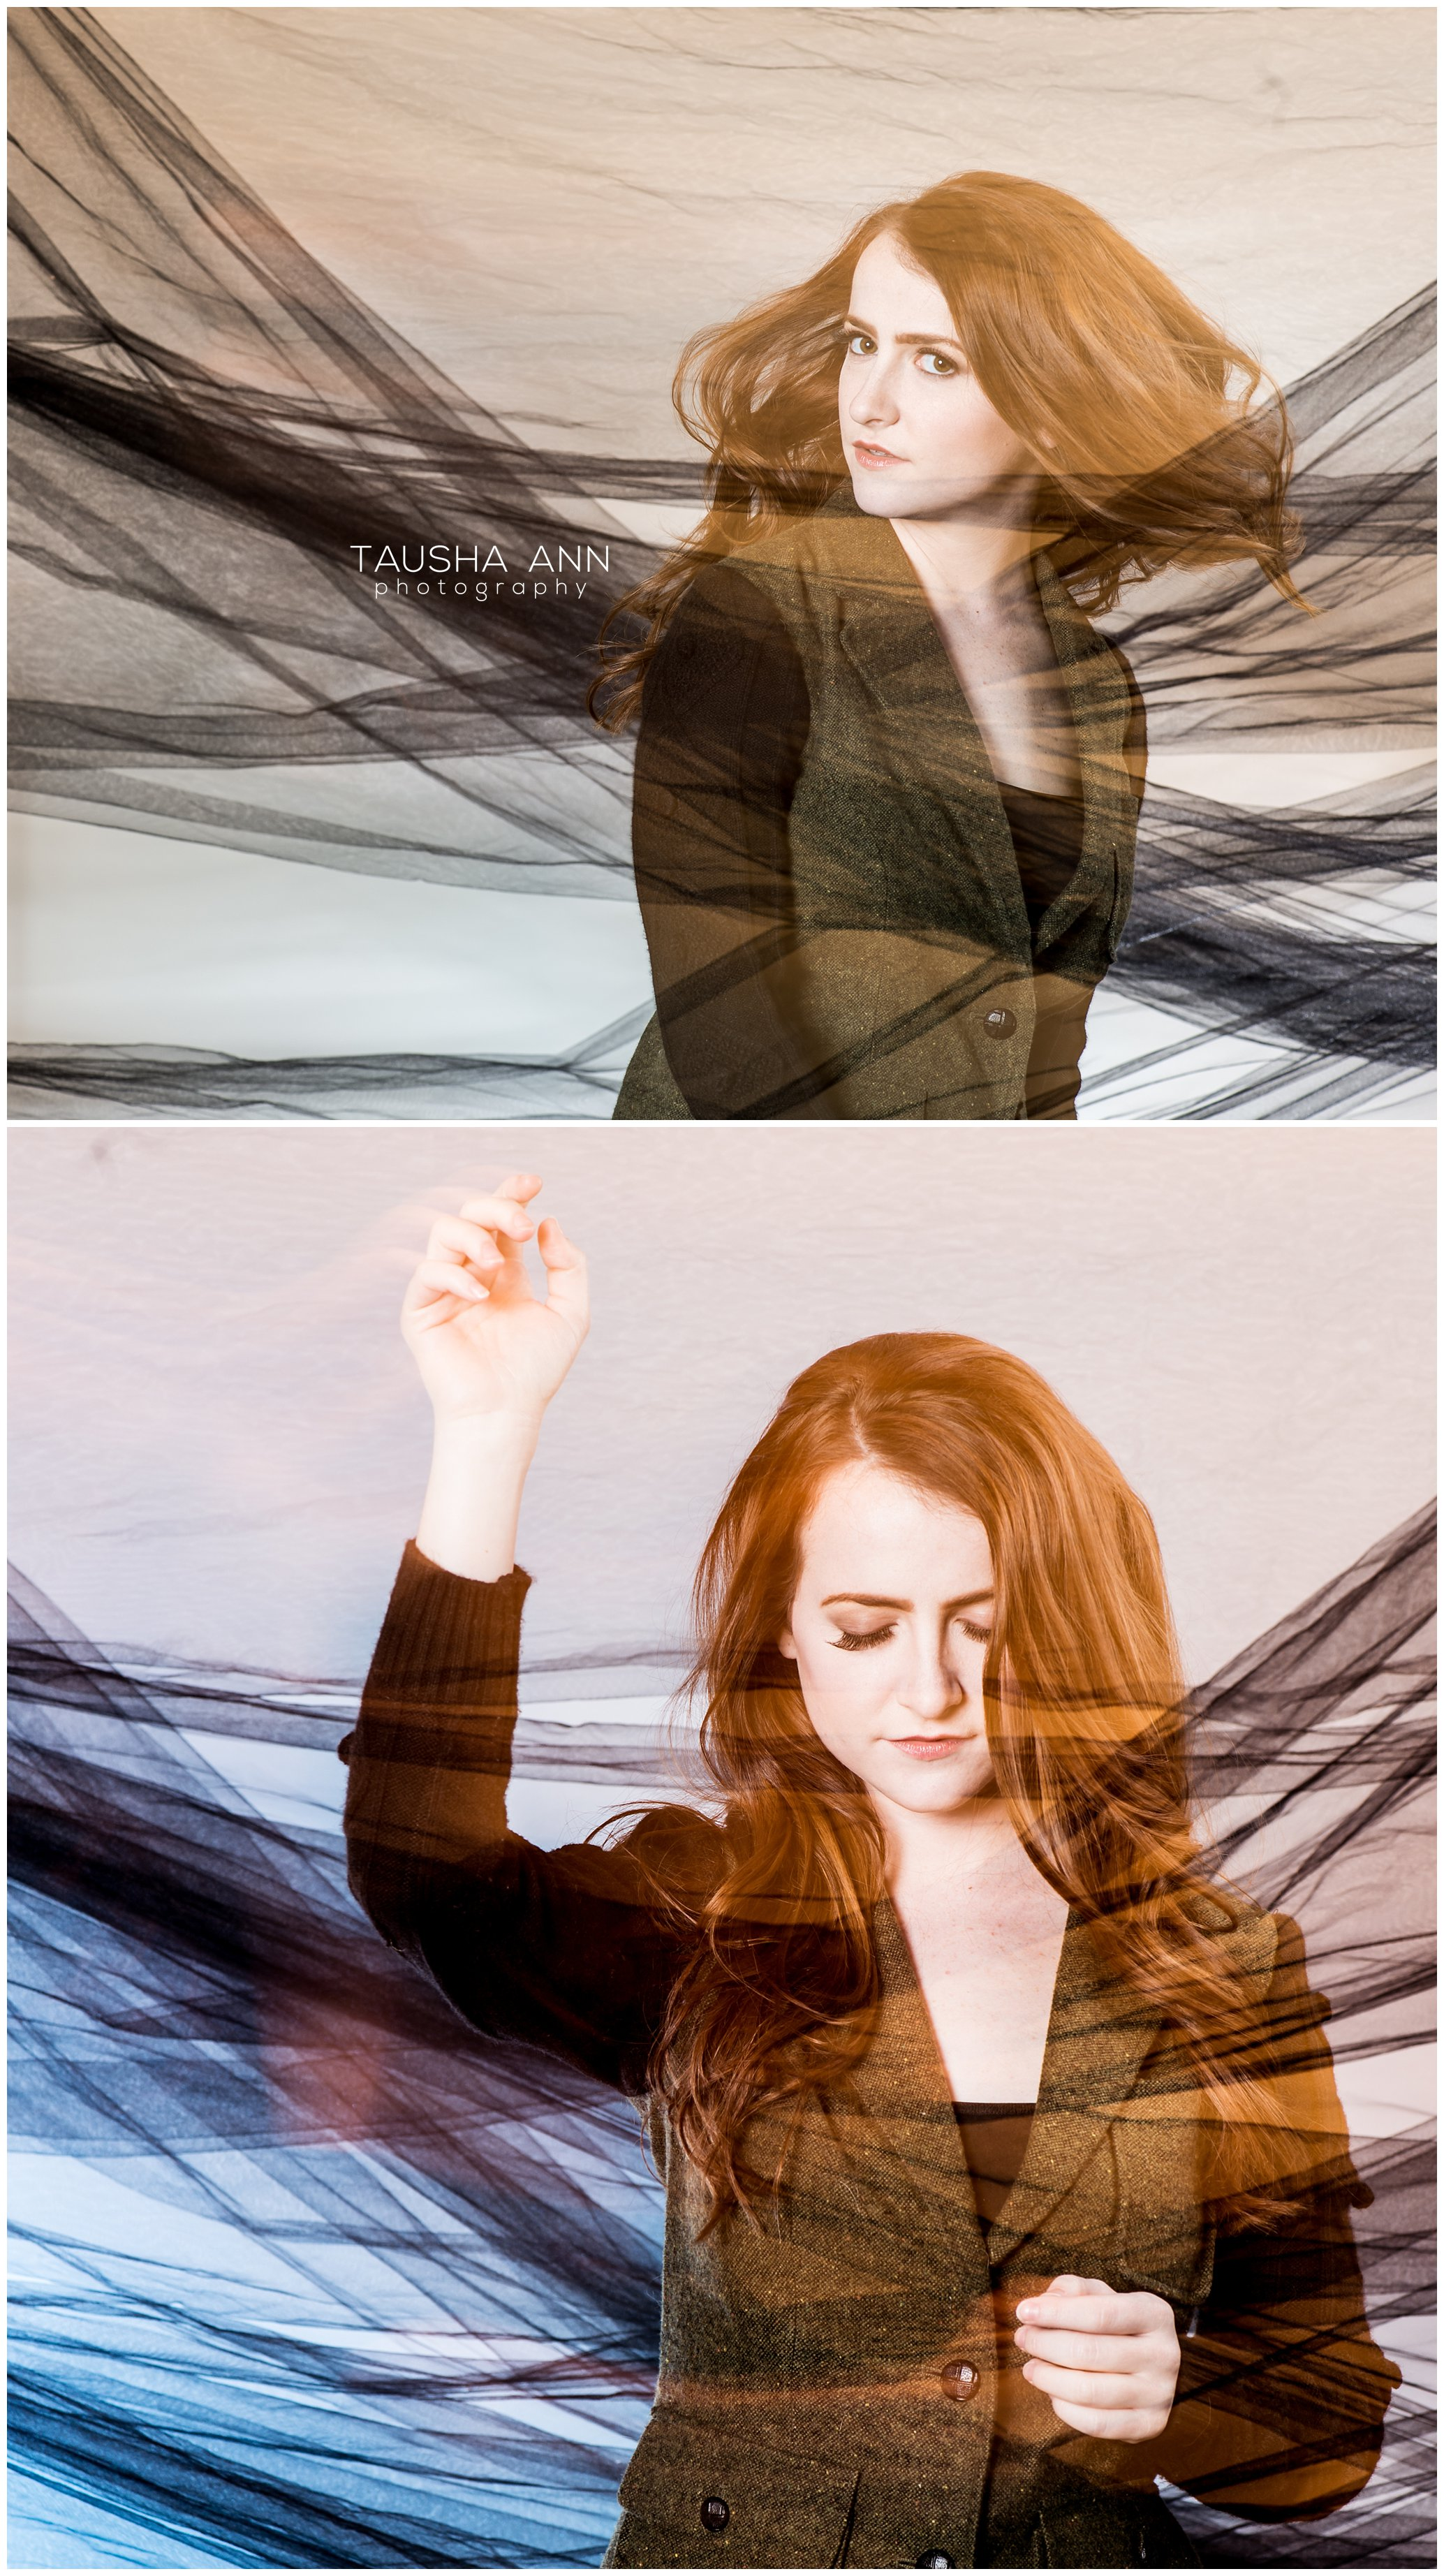 Shannon_Grace_Nashville_TN_FRanklin_Model_Photography_Headshots_artistic_Double_Exposure.jpg